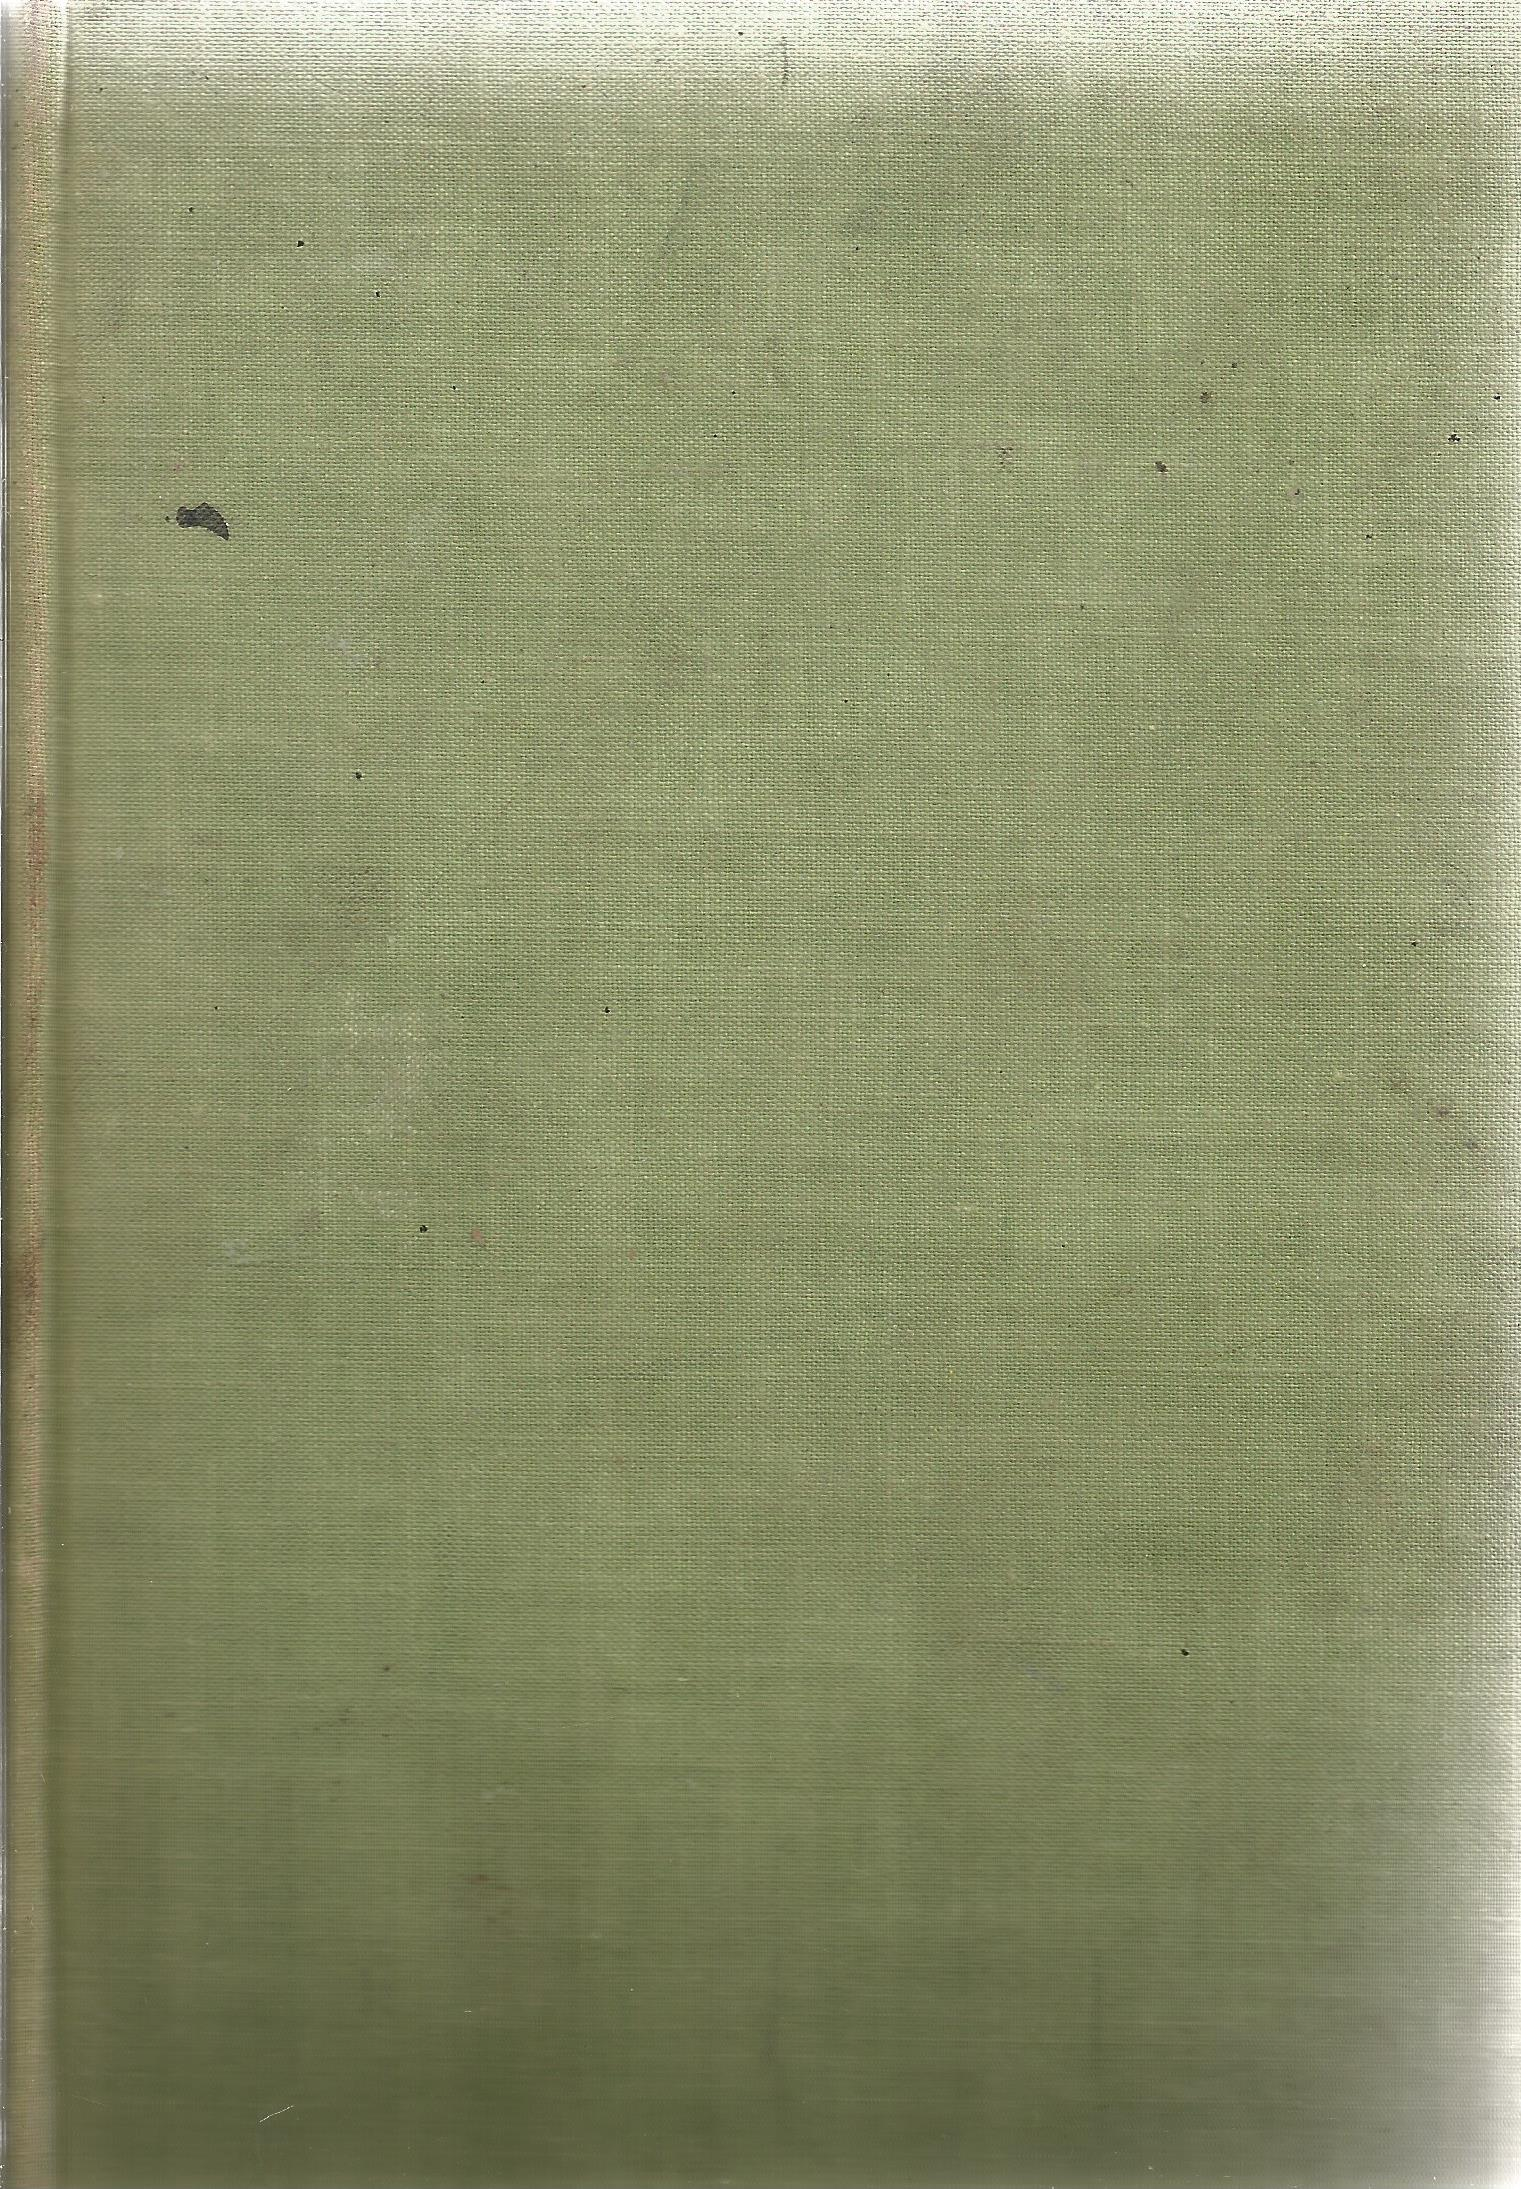 2 Hardback Books Half Breed by Lovat Dickson 1939 Grey Owl and the Beaver by Harper Cory 1935 - Image 4 of 7